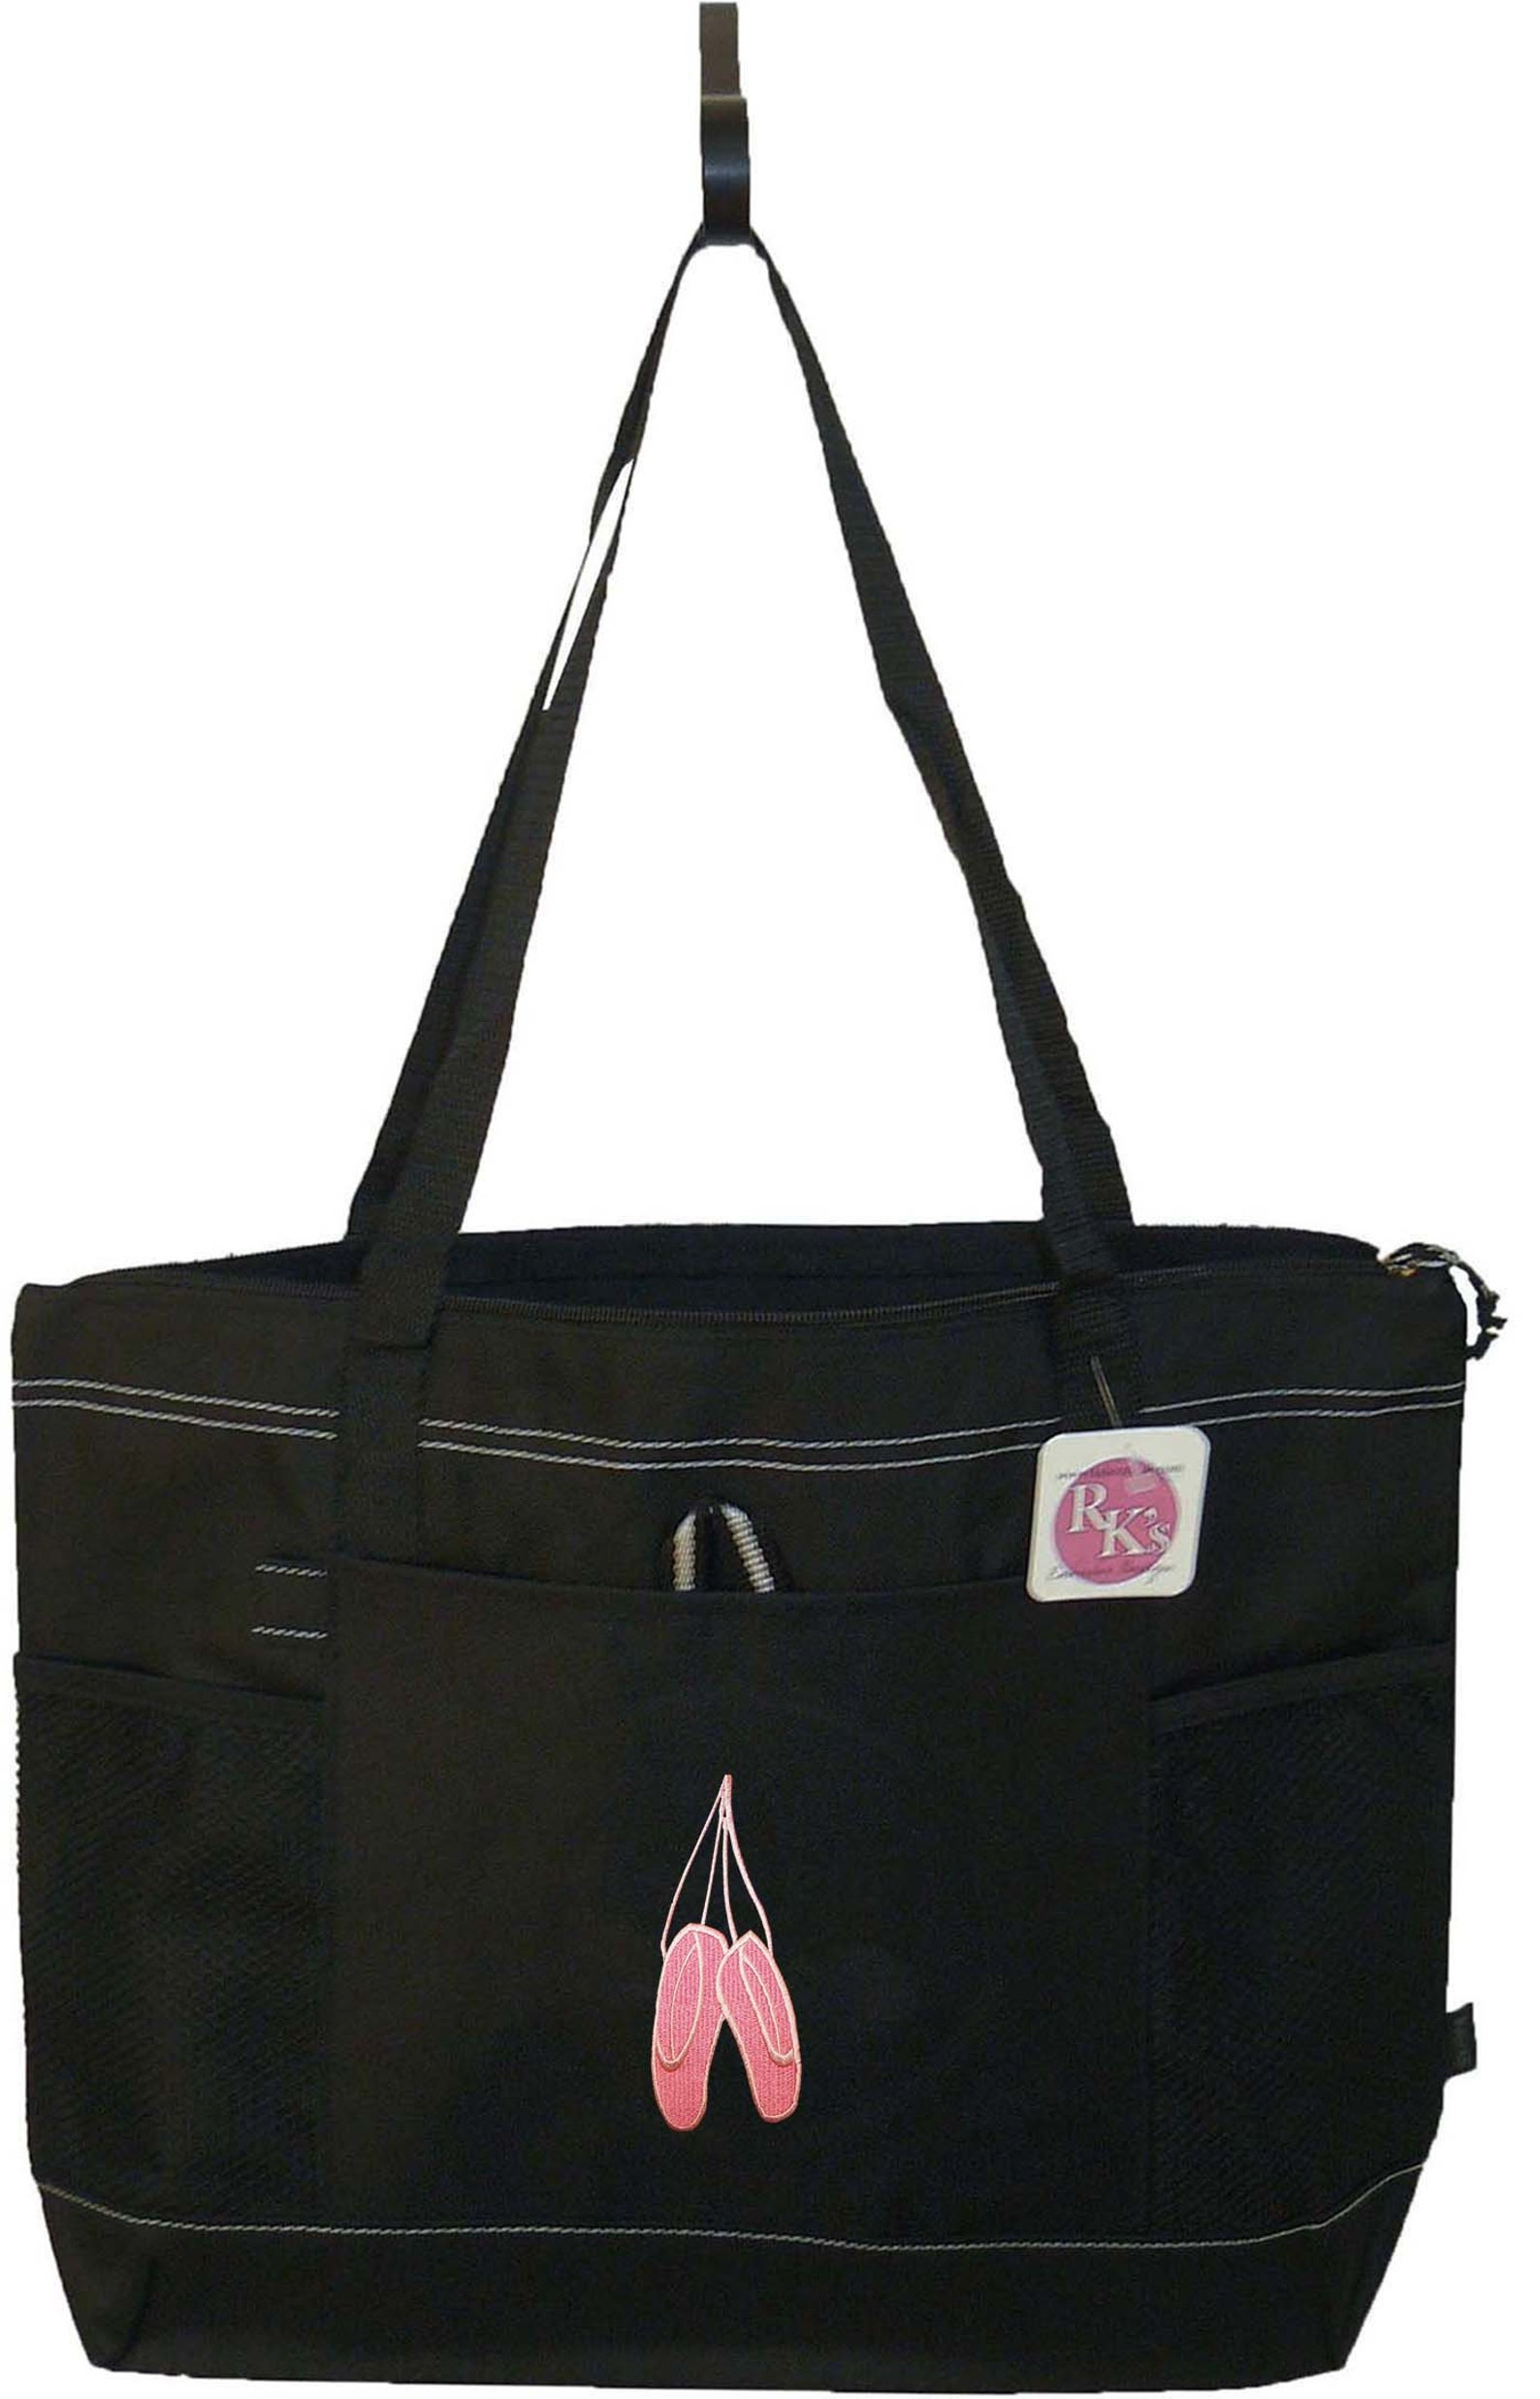 ballet shoes monogram ballerina bag black ready to ship! gemline select zippered tote dancing instructor gift custom embroidered